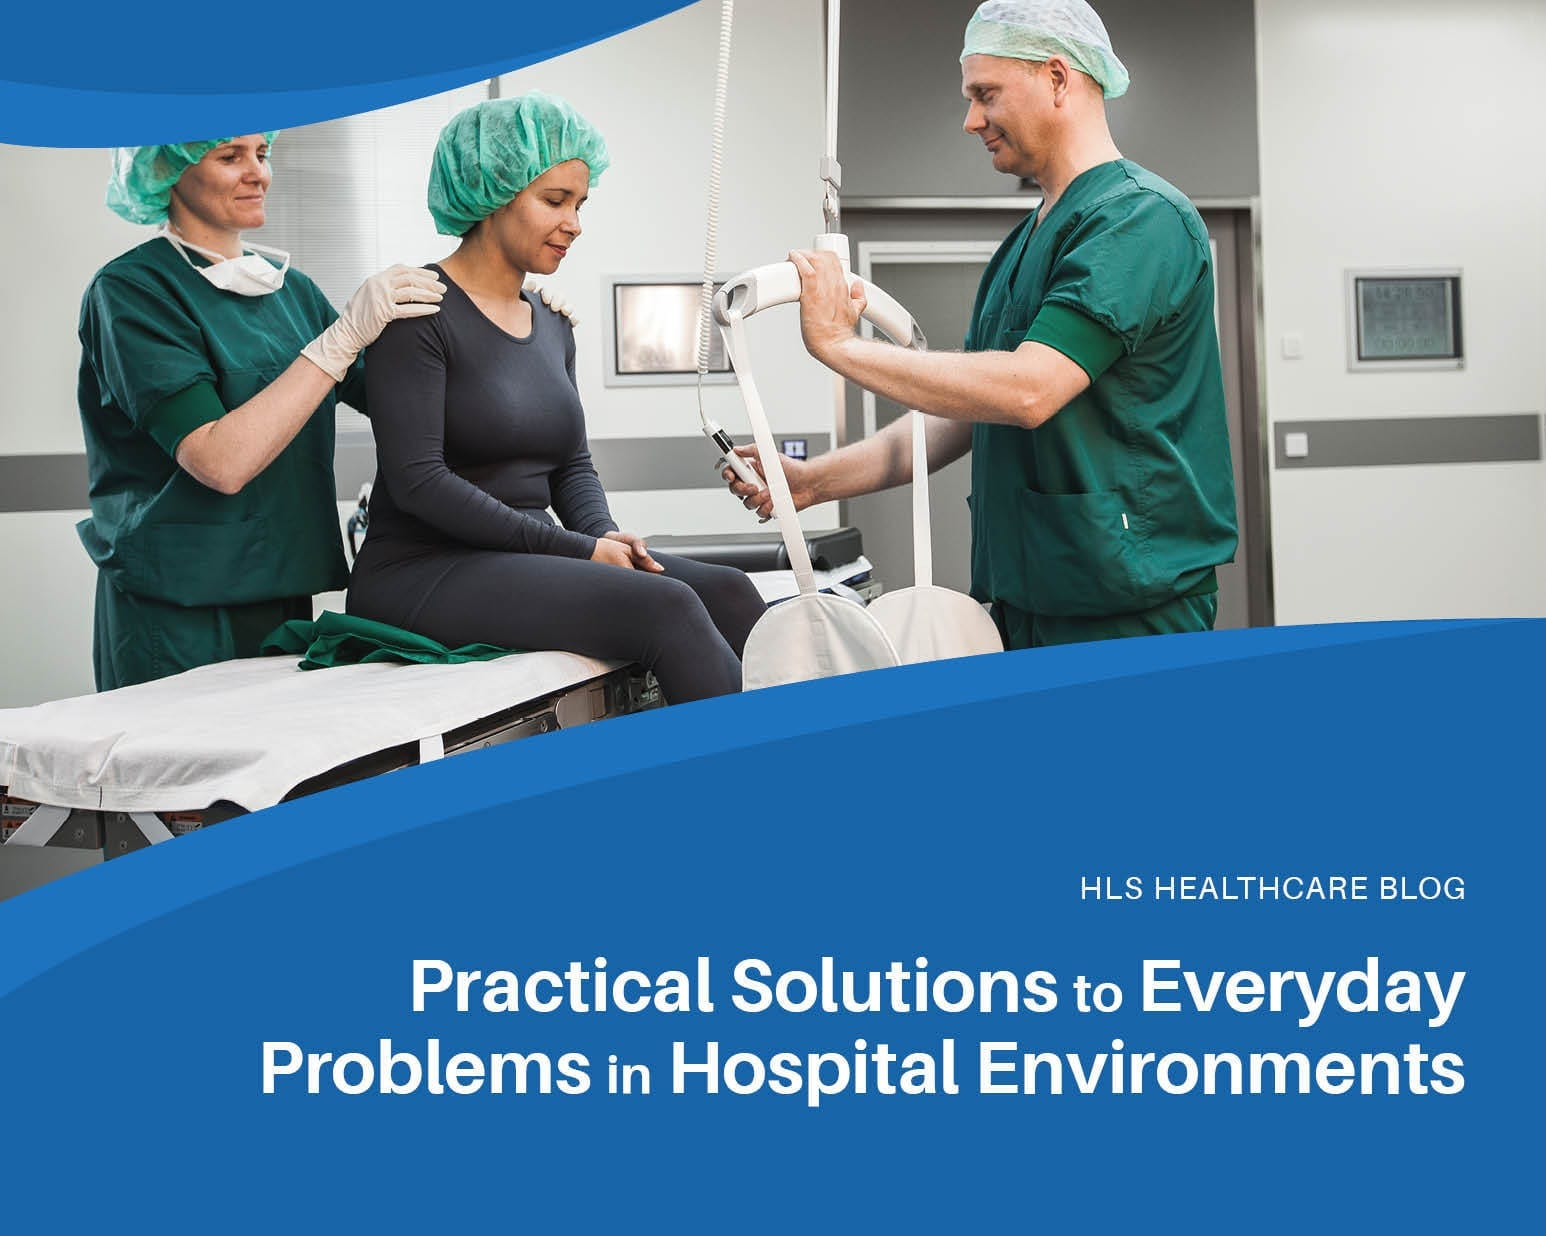 Practical Solutions to Everyday Problems in Hospital Environments